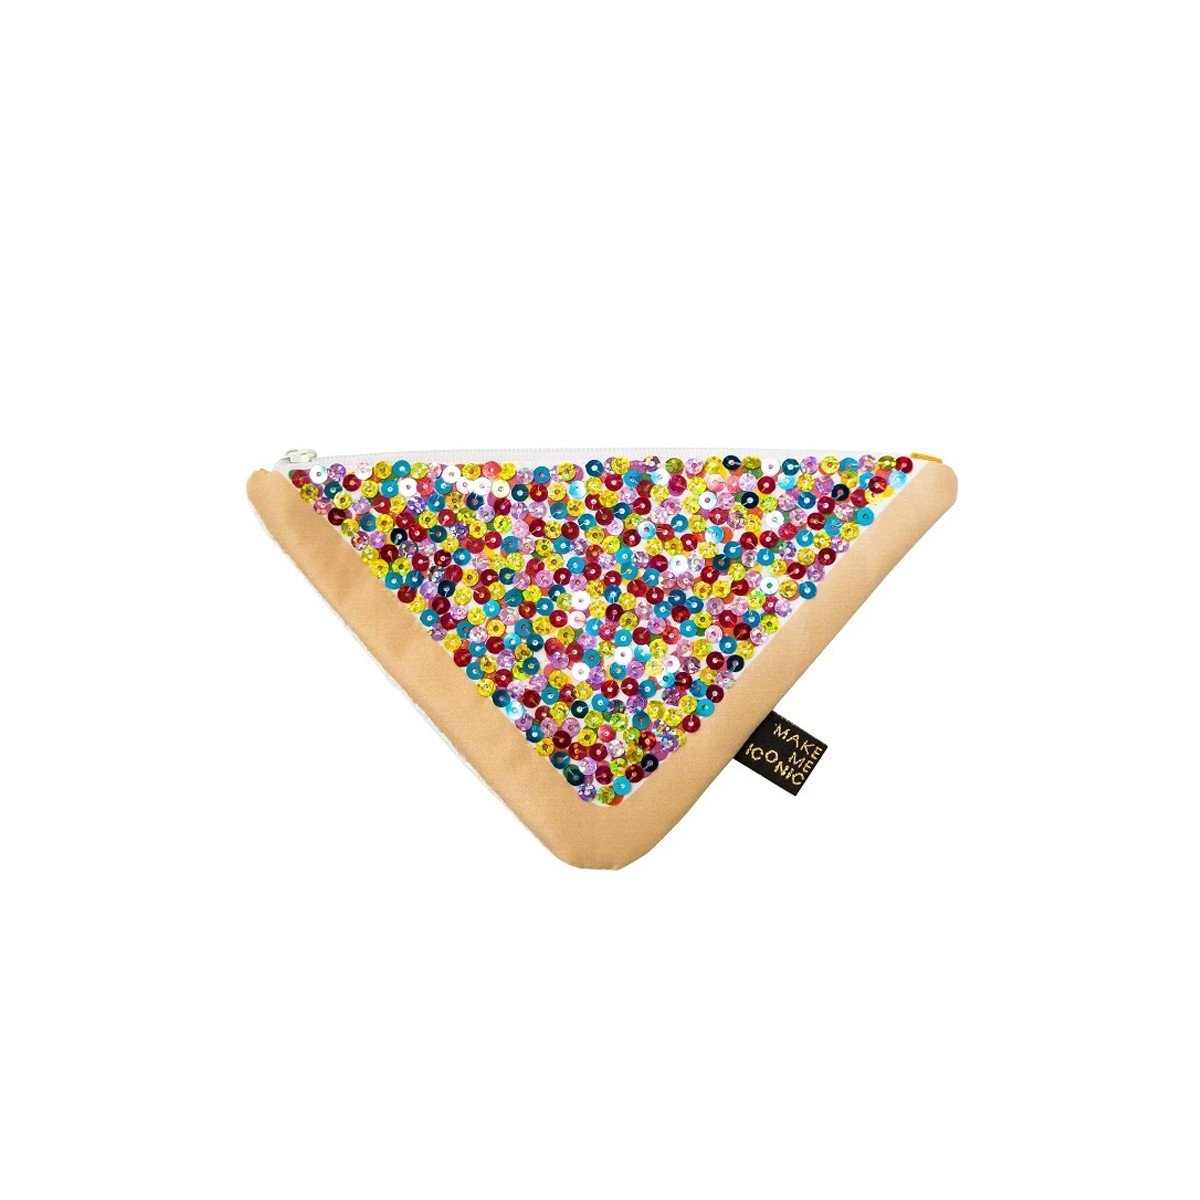 Make Me Iconic Fairy Bread Purse   - Make Me Iconic - Little Earth Nest - 1